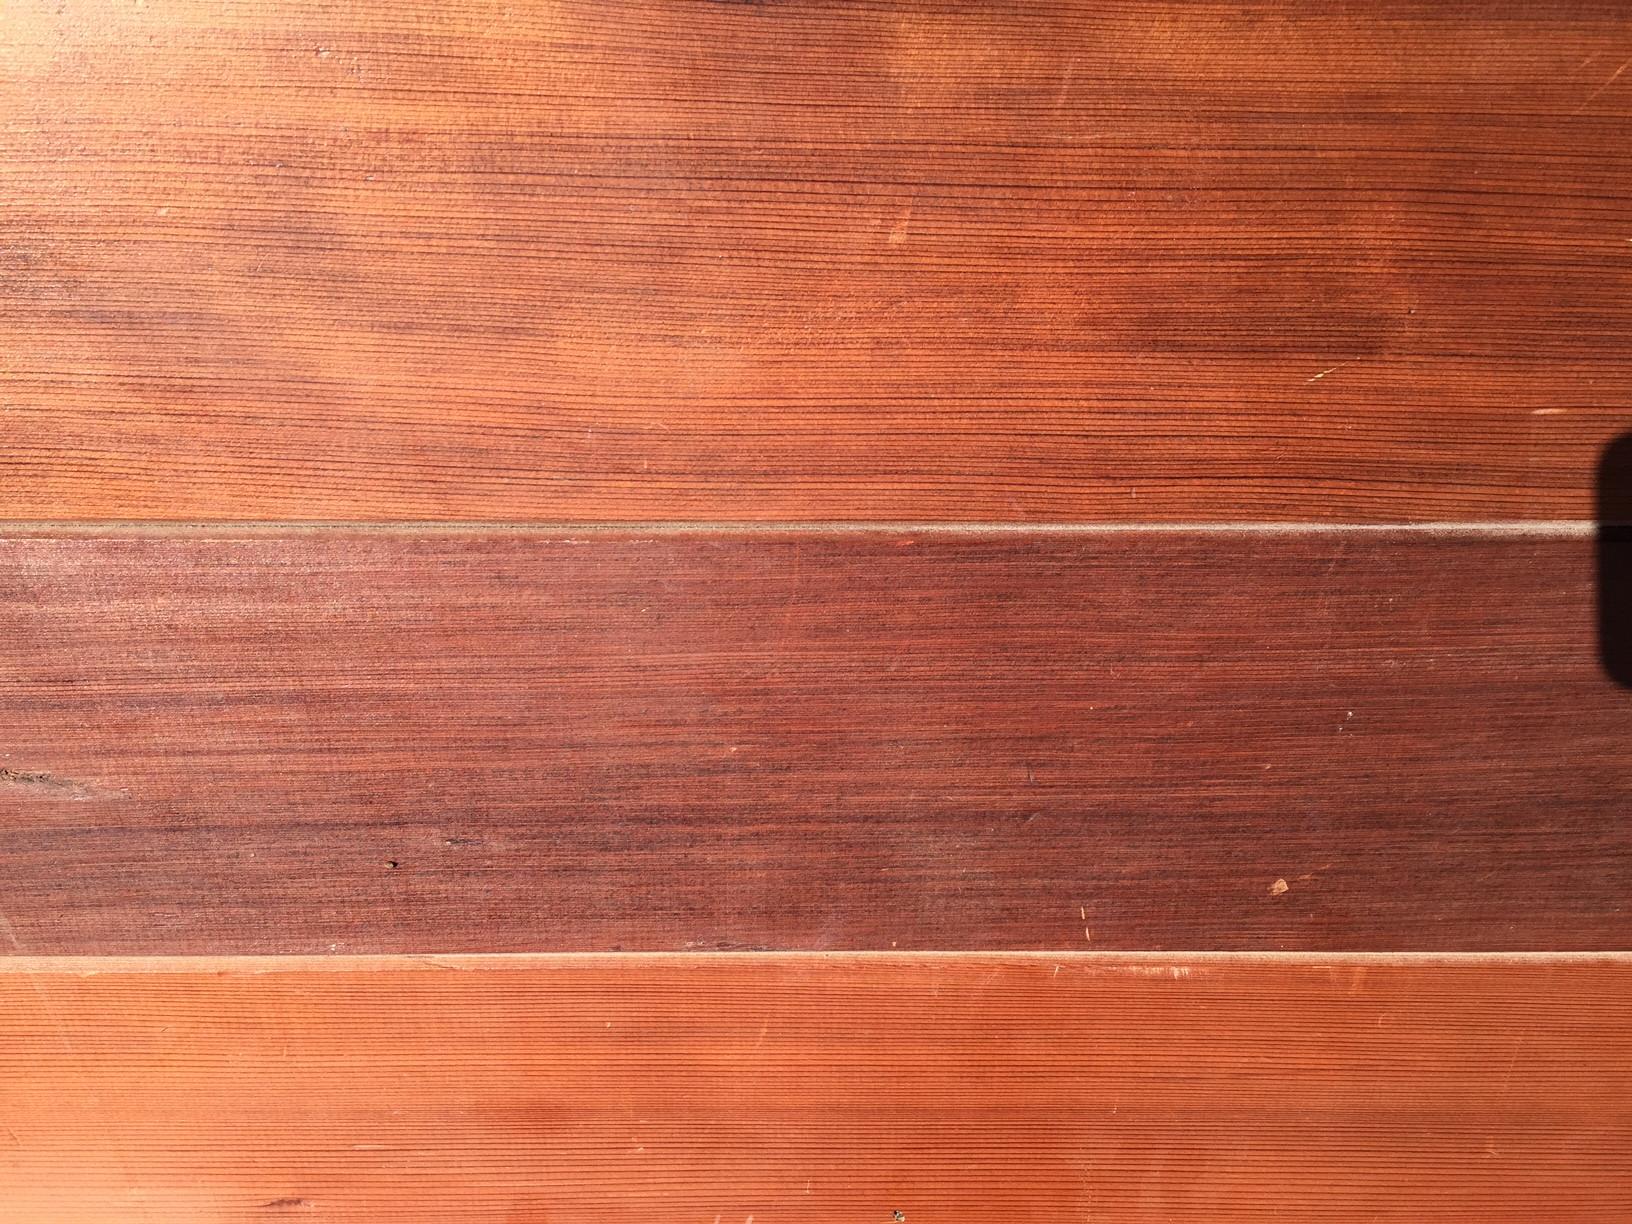 prefinished hardwood flooring charlotte nc of heritage salvage heritage salvage inside reclaimed old growth redwood originally constructed in 1950 the beautiful home of the copes was fully clad out in phenomenal clear vertical grain